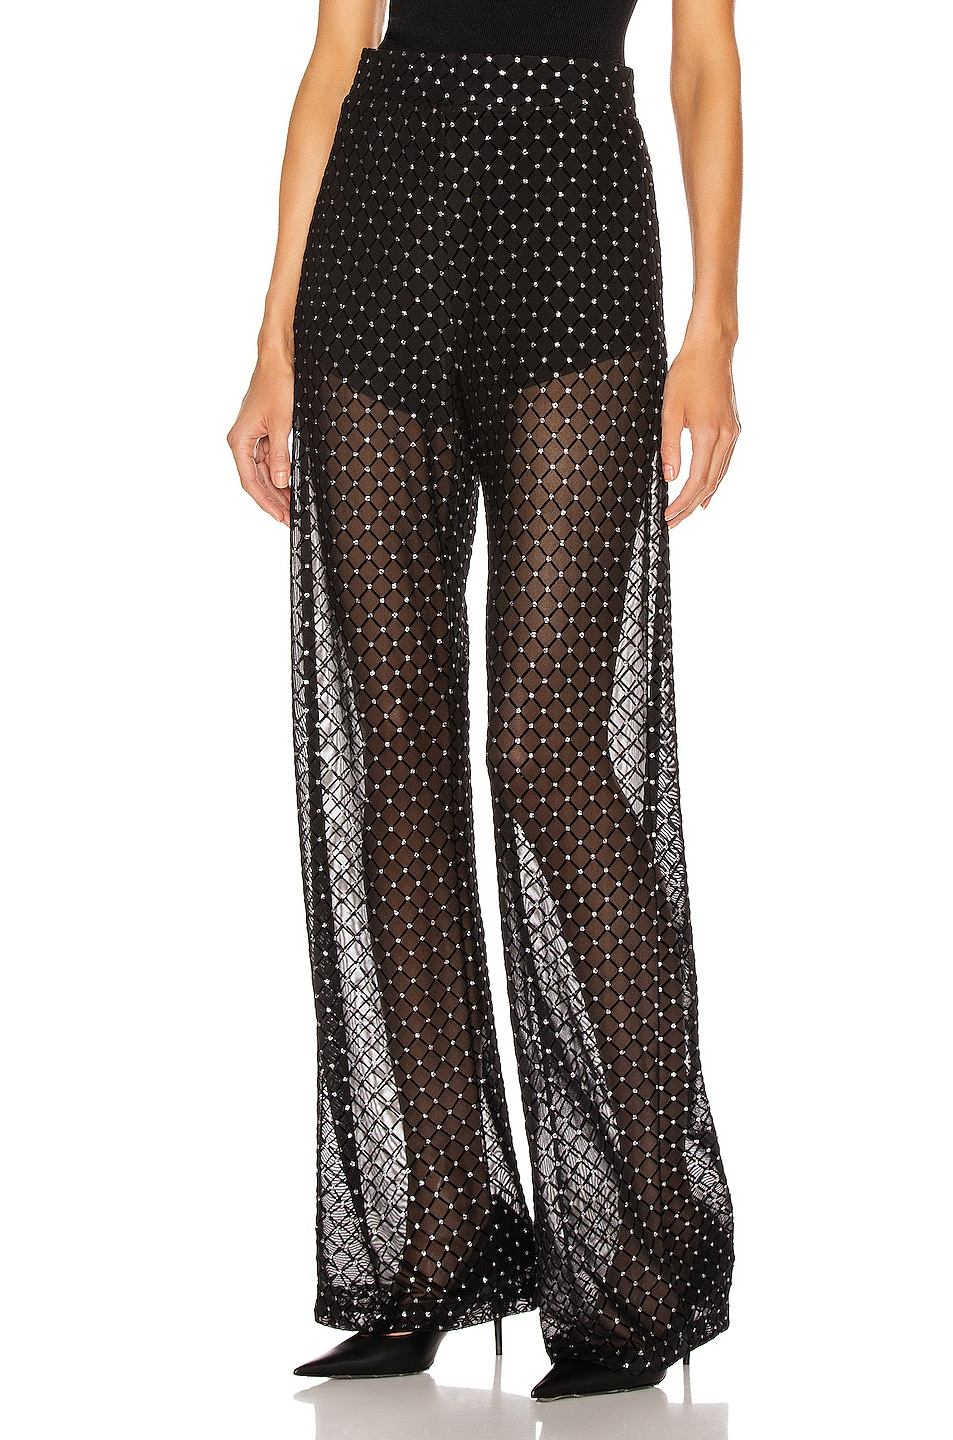 Image 1 of Michelle Mason for FWRD Sheer Pant in Black Shimmer